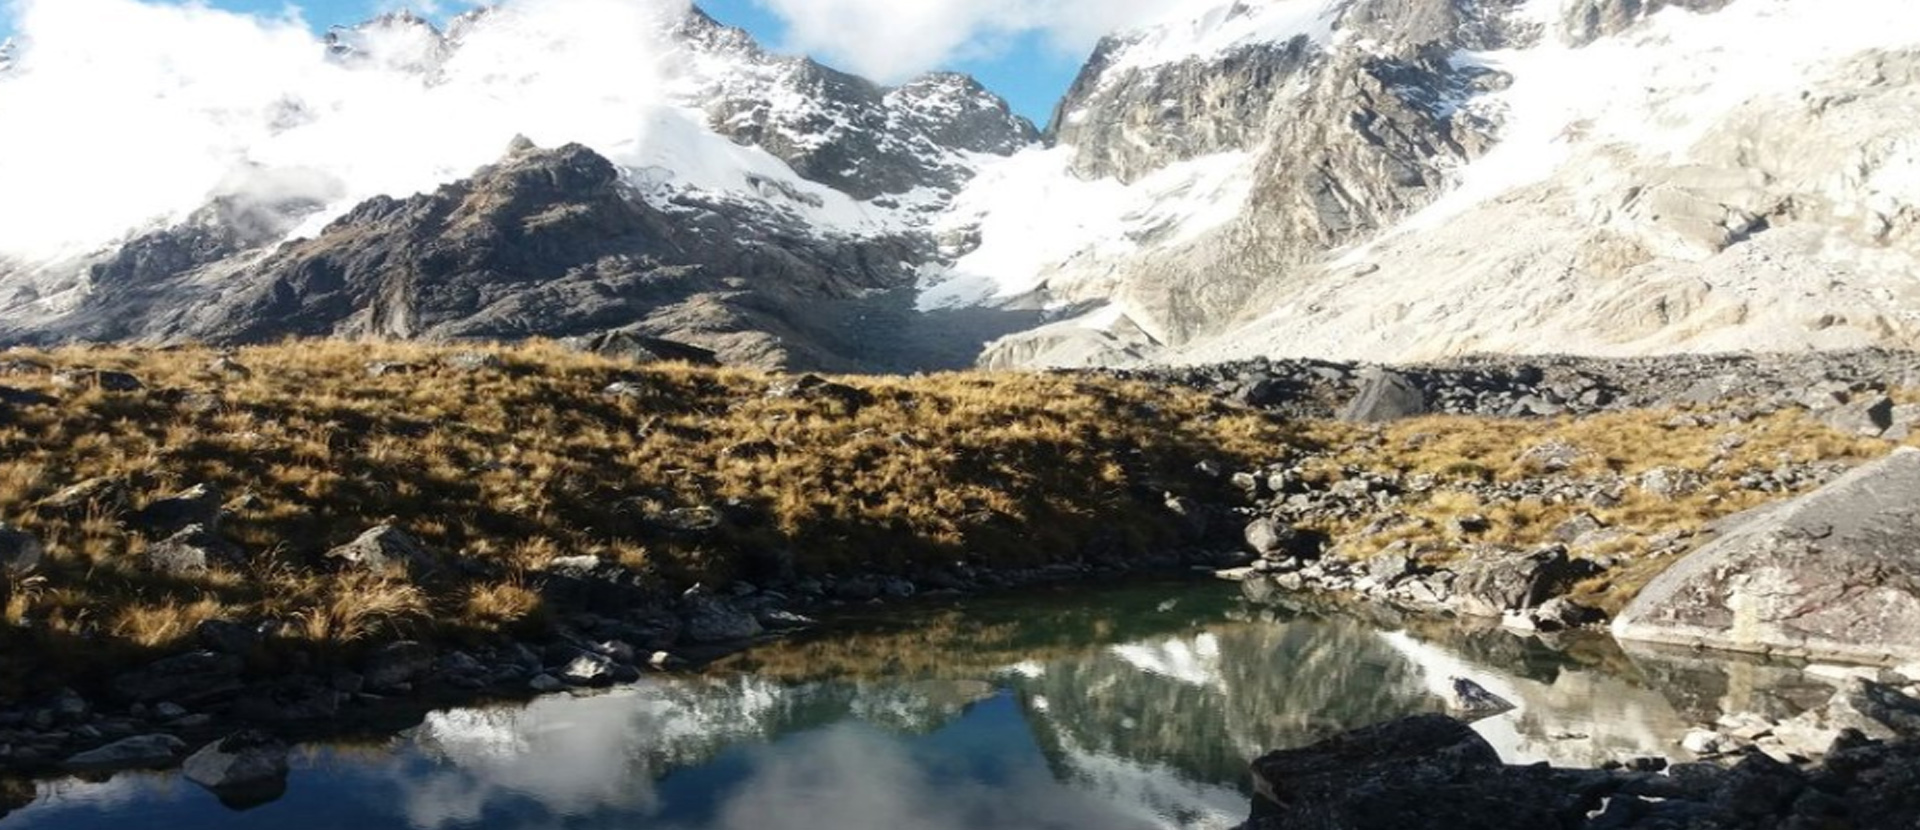 Salkantay Trek to MachuPicchu 5 days - Inka Jungle Treks